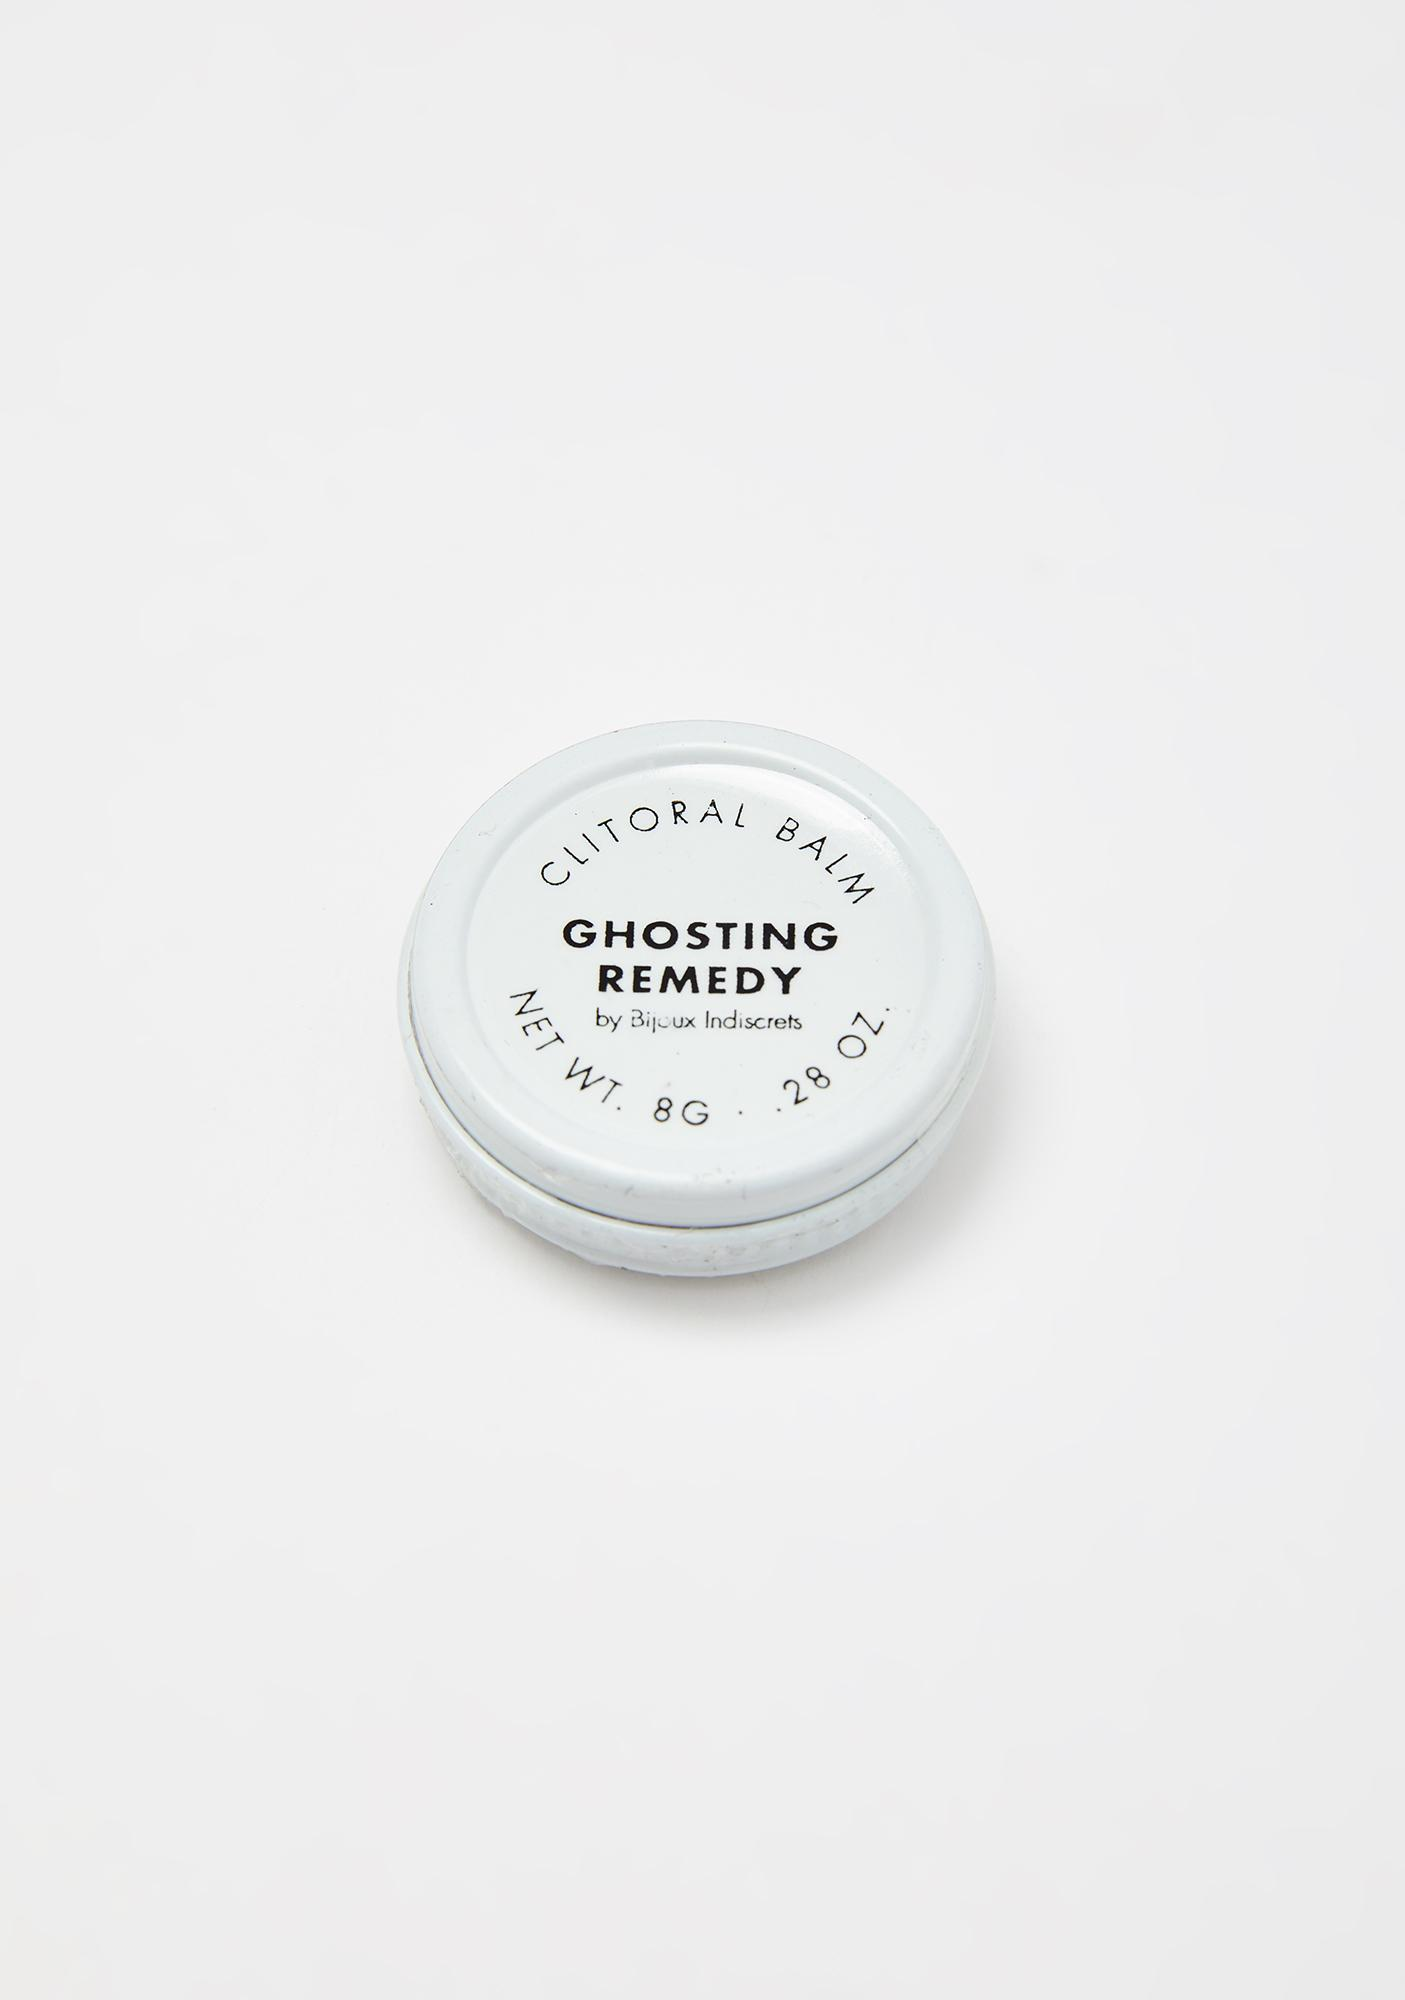 BIJOUX INDISCRETS Ghosting Remedy Clitoral Balm